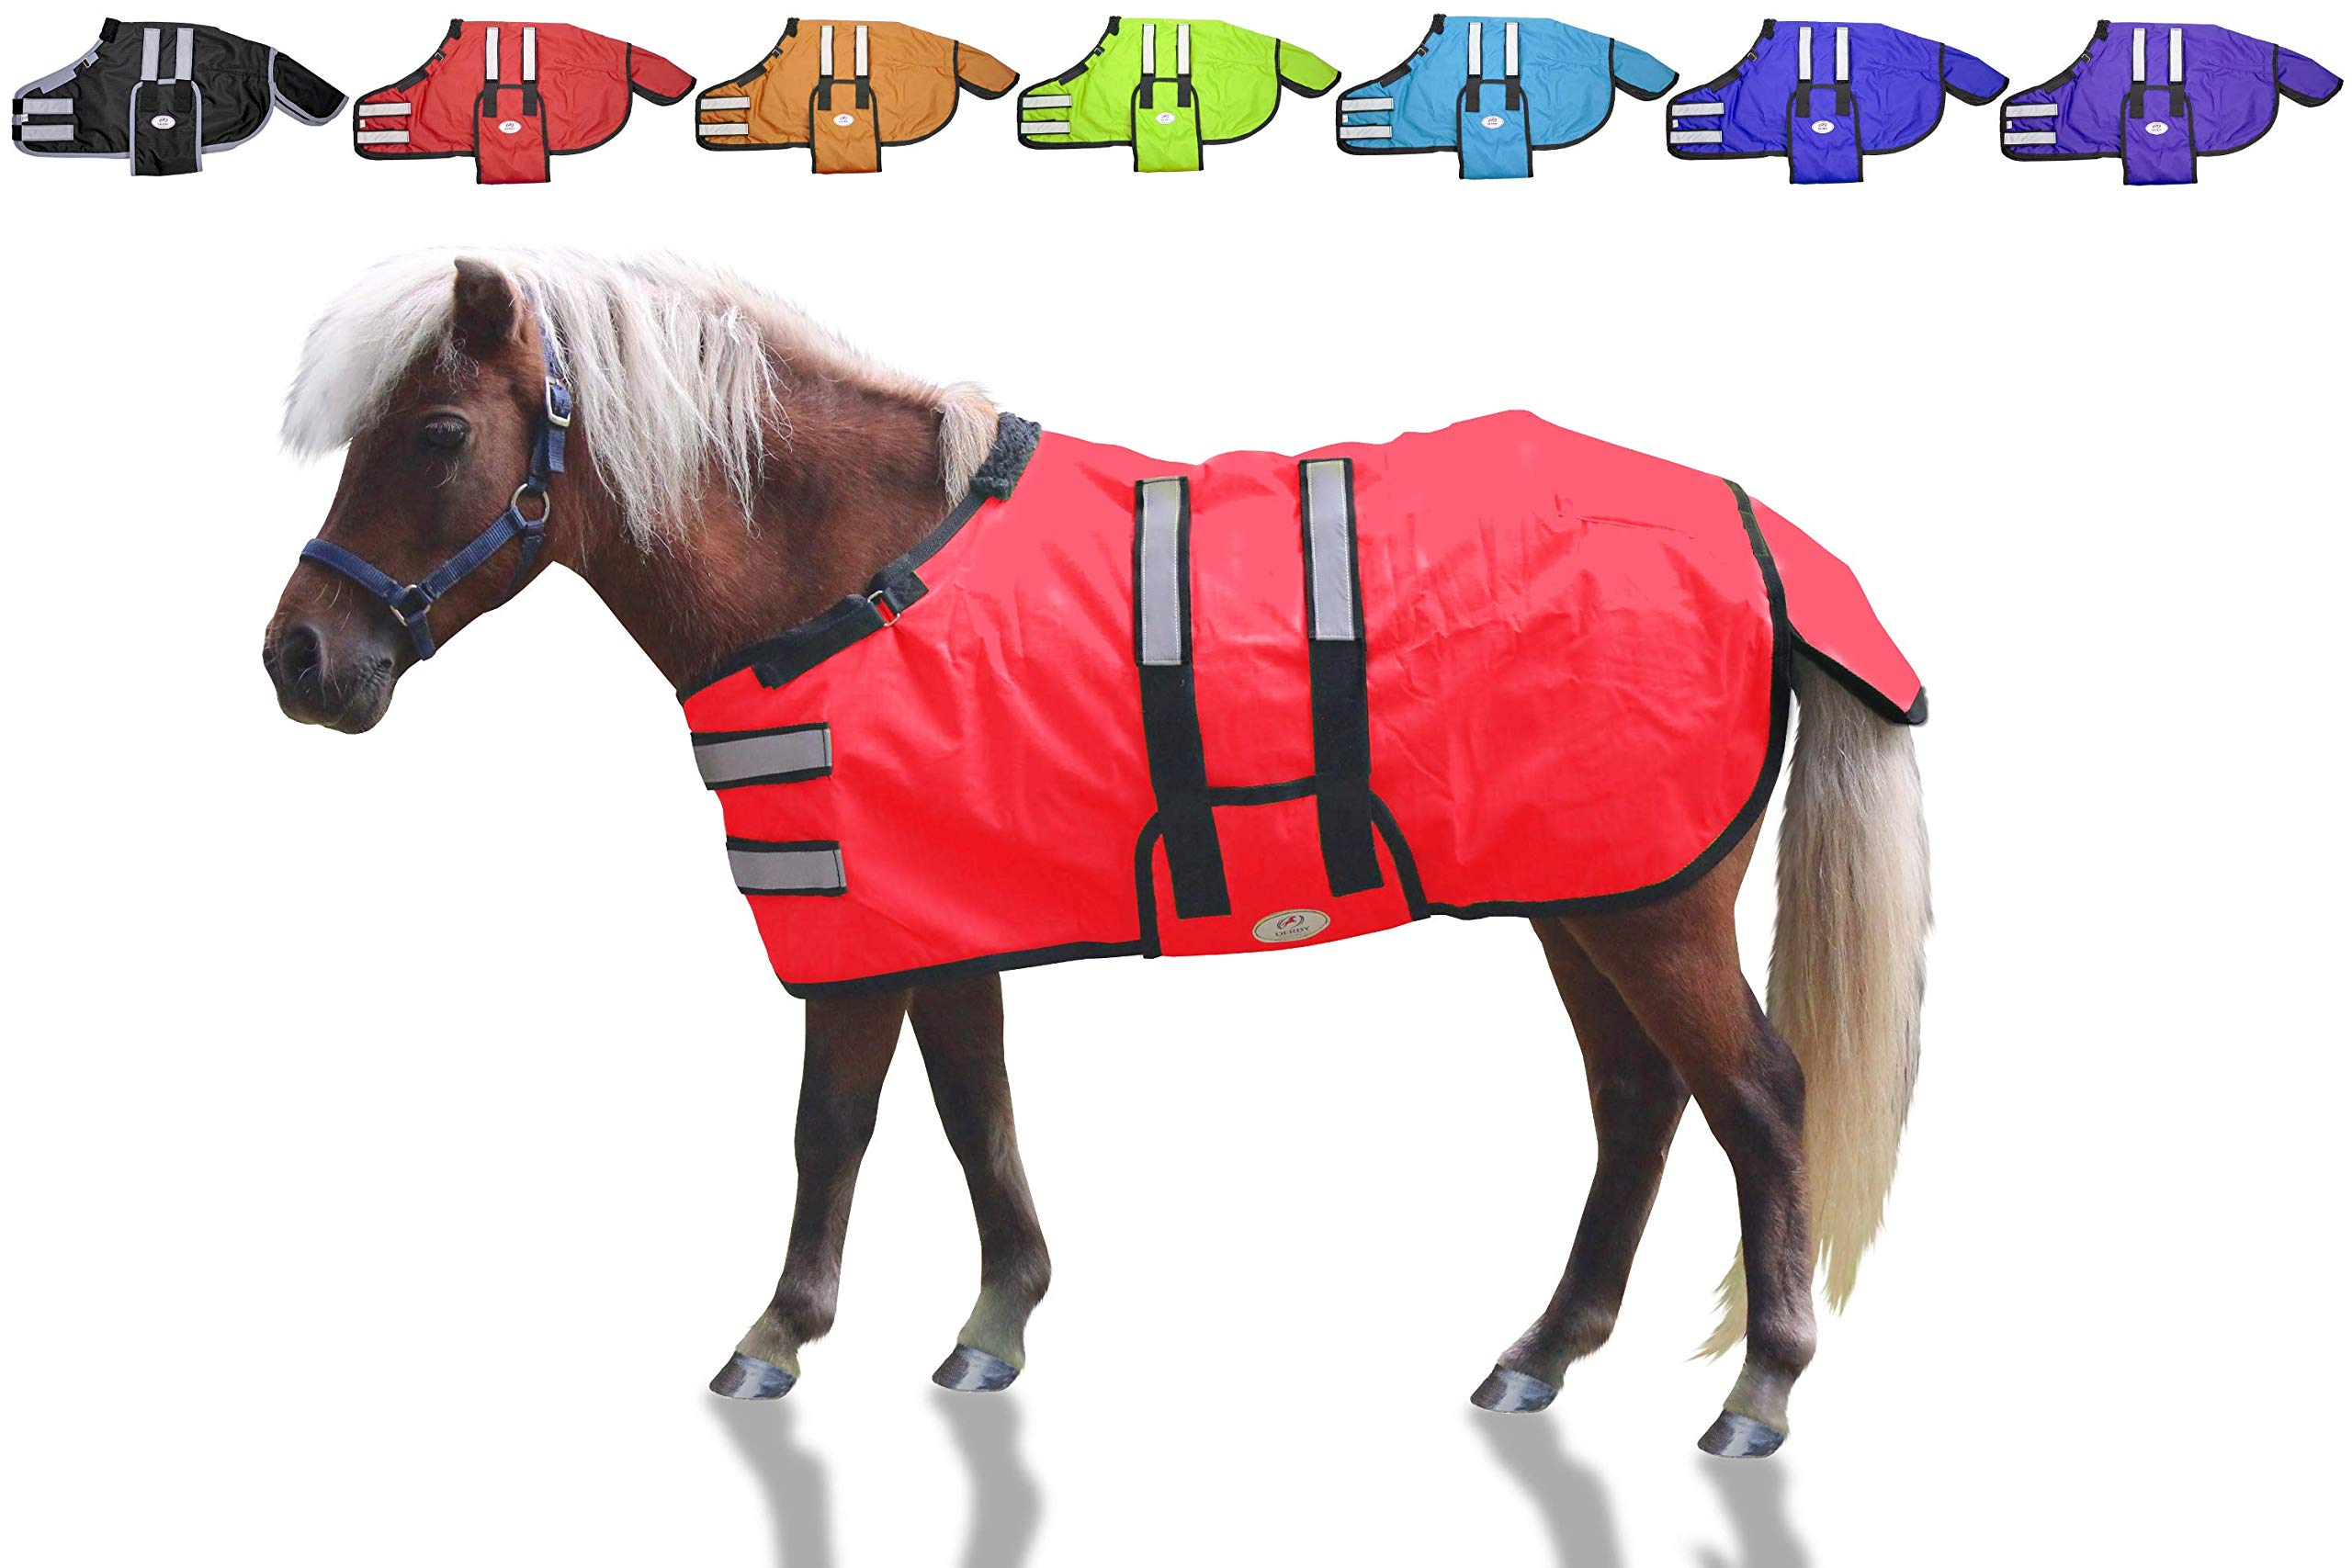 Derby Originals 600D Reflective Safety Winter Foal & Mini Horse Blanket with Warranty - Ripstop Breathable Waterproof Nylon No Hardware Turnout Blanket by Derby Originals